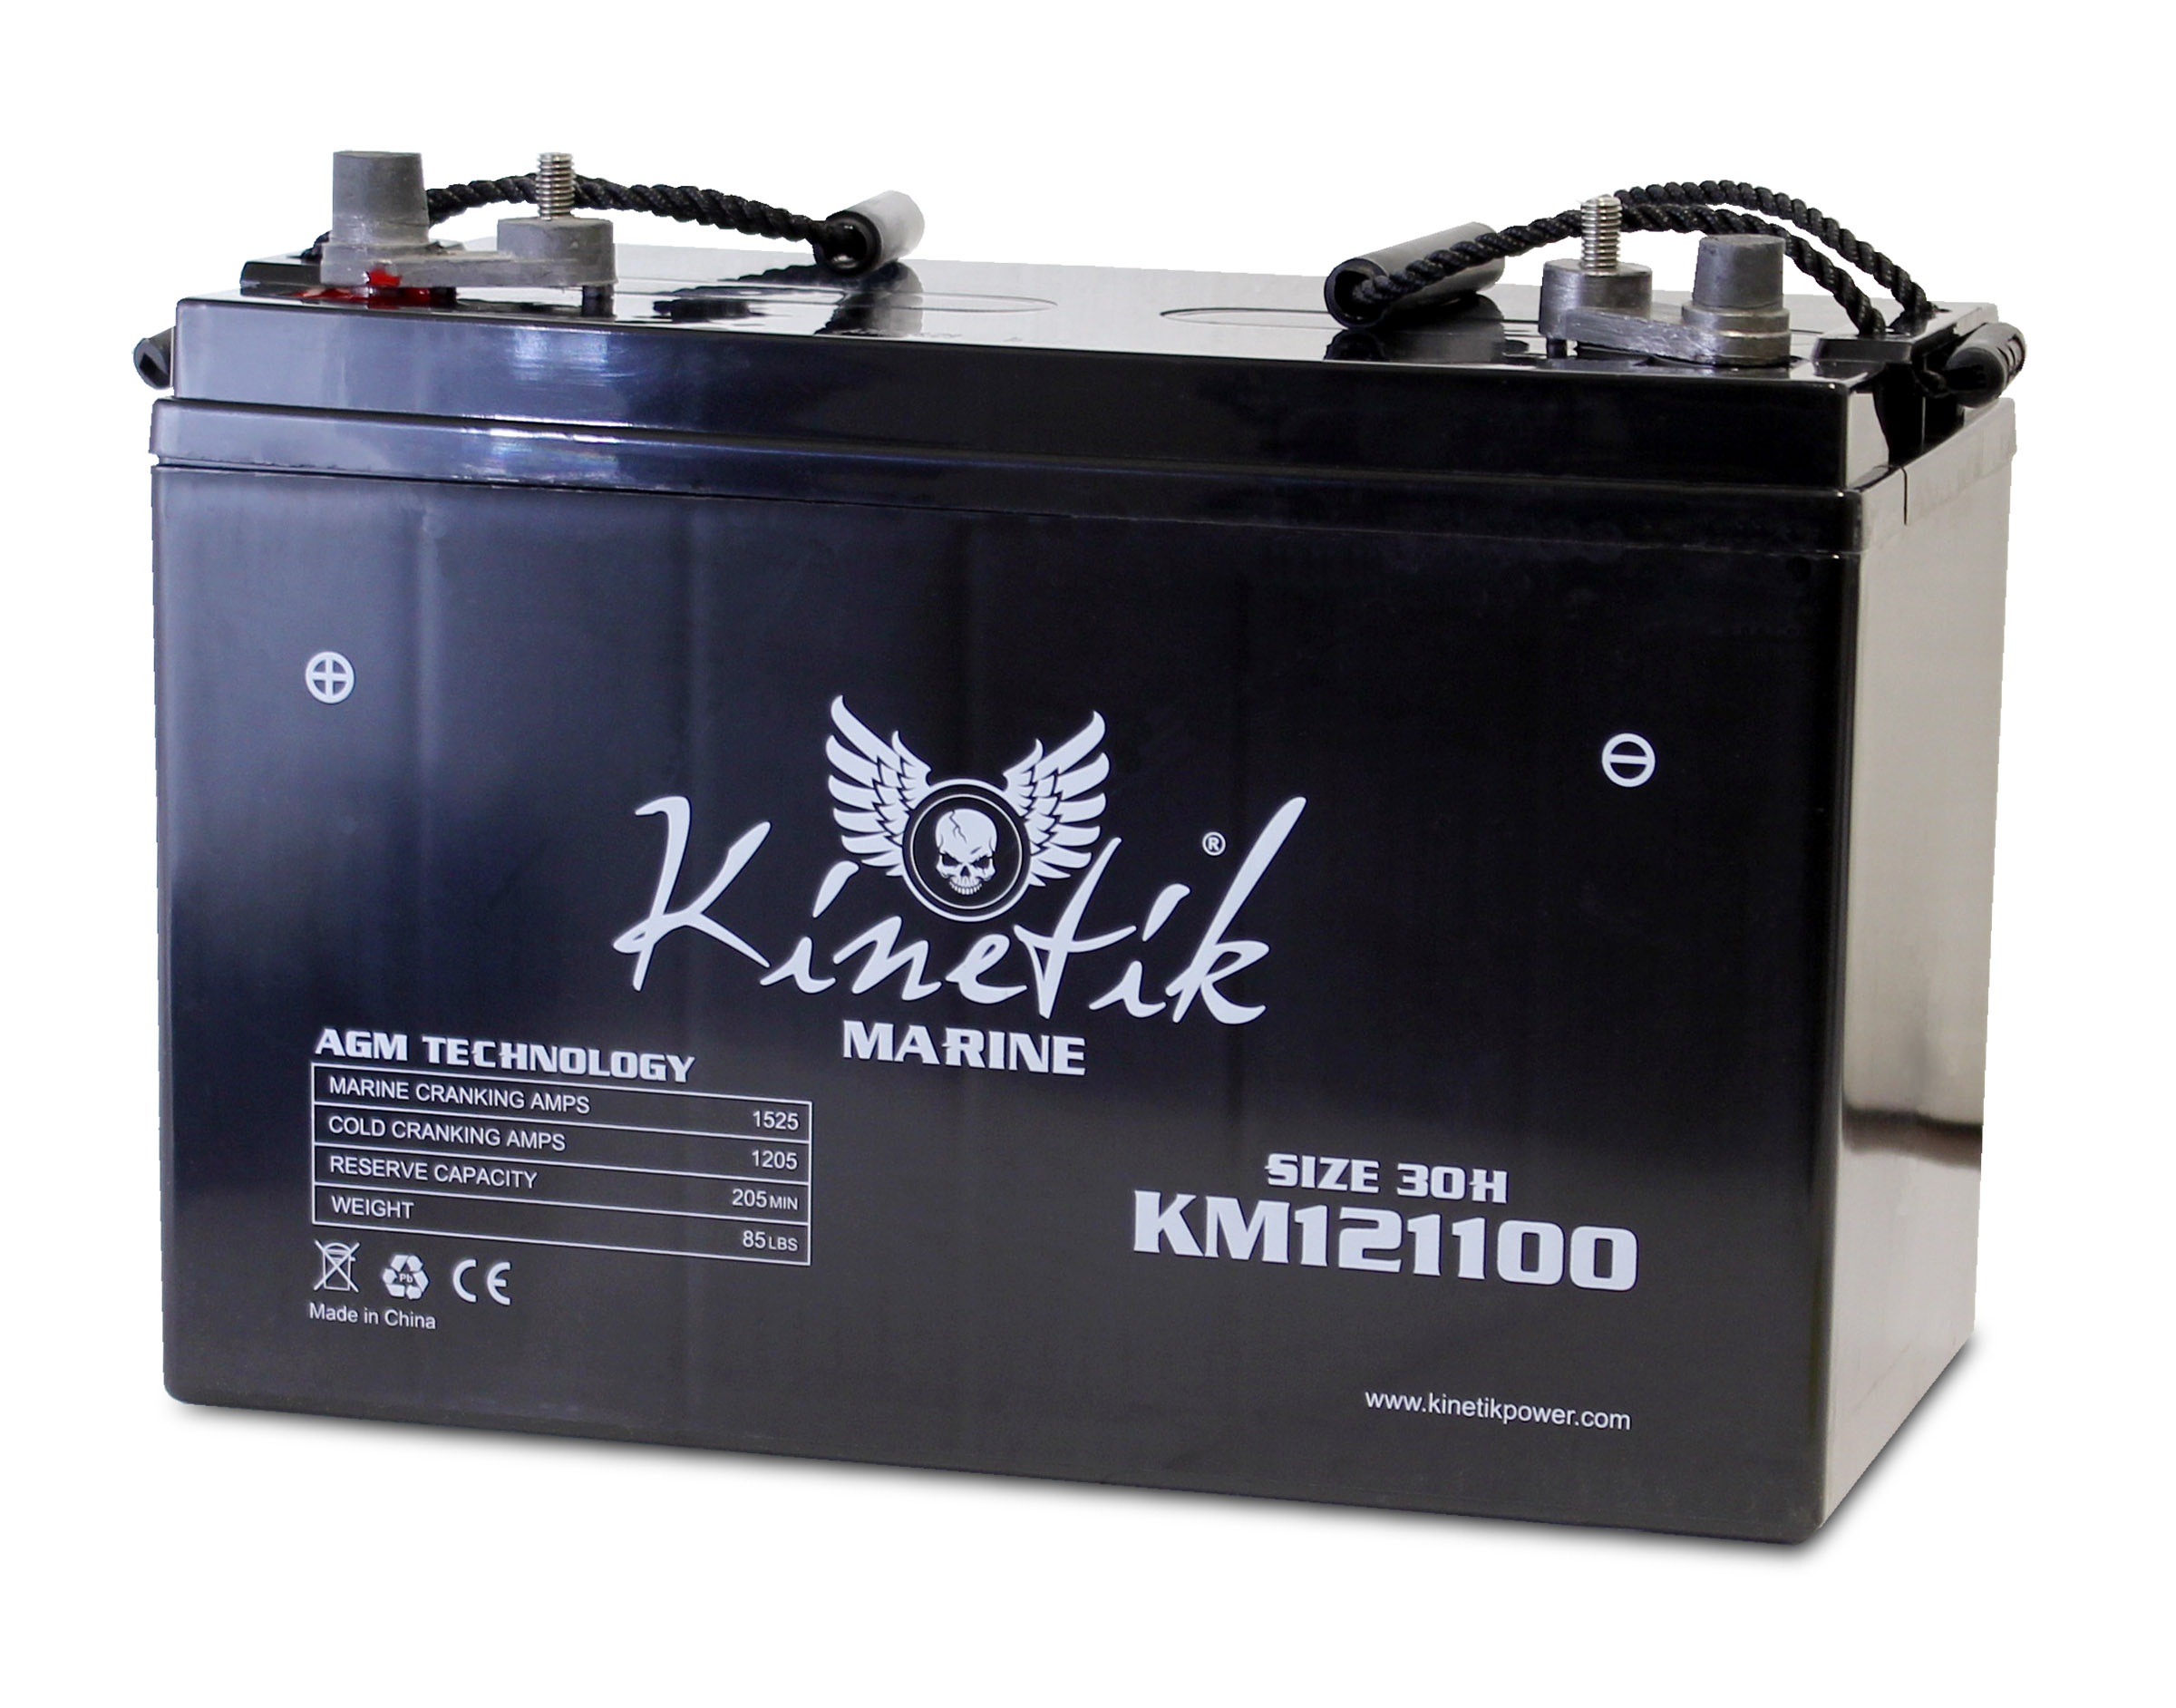 12V 110AH Group 30H Battery for Torqeedo Cruise 4.0 Outboard